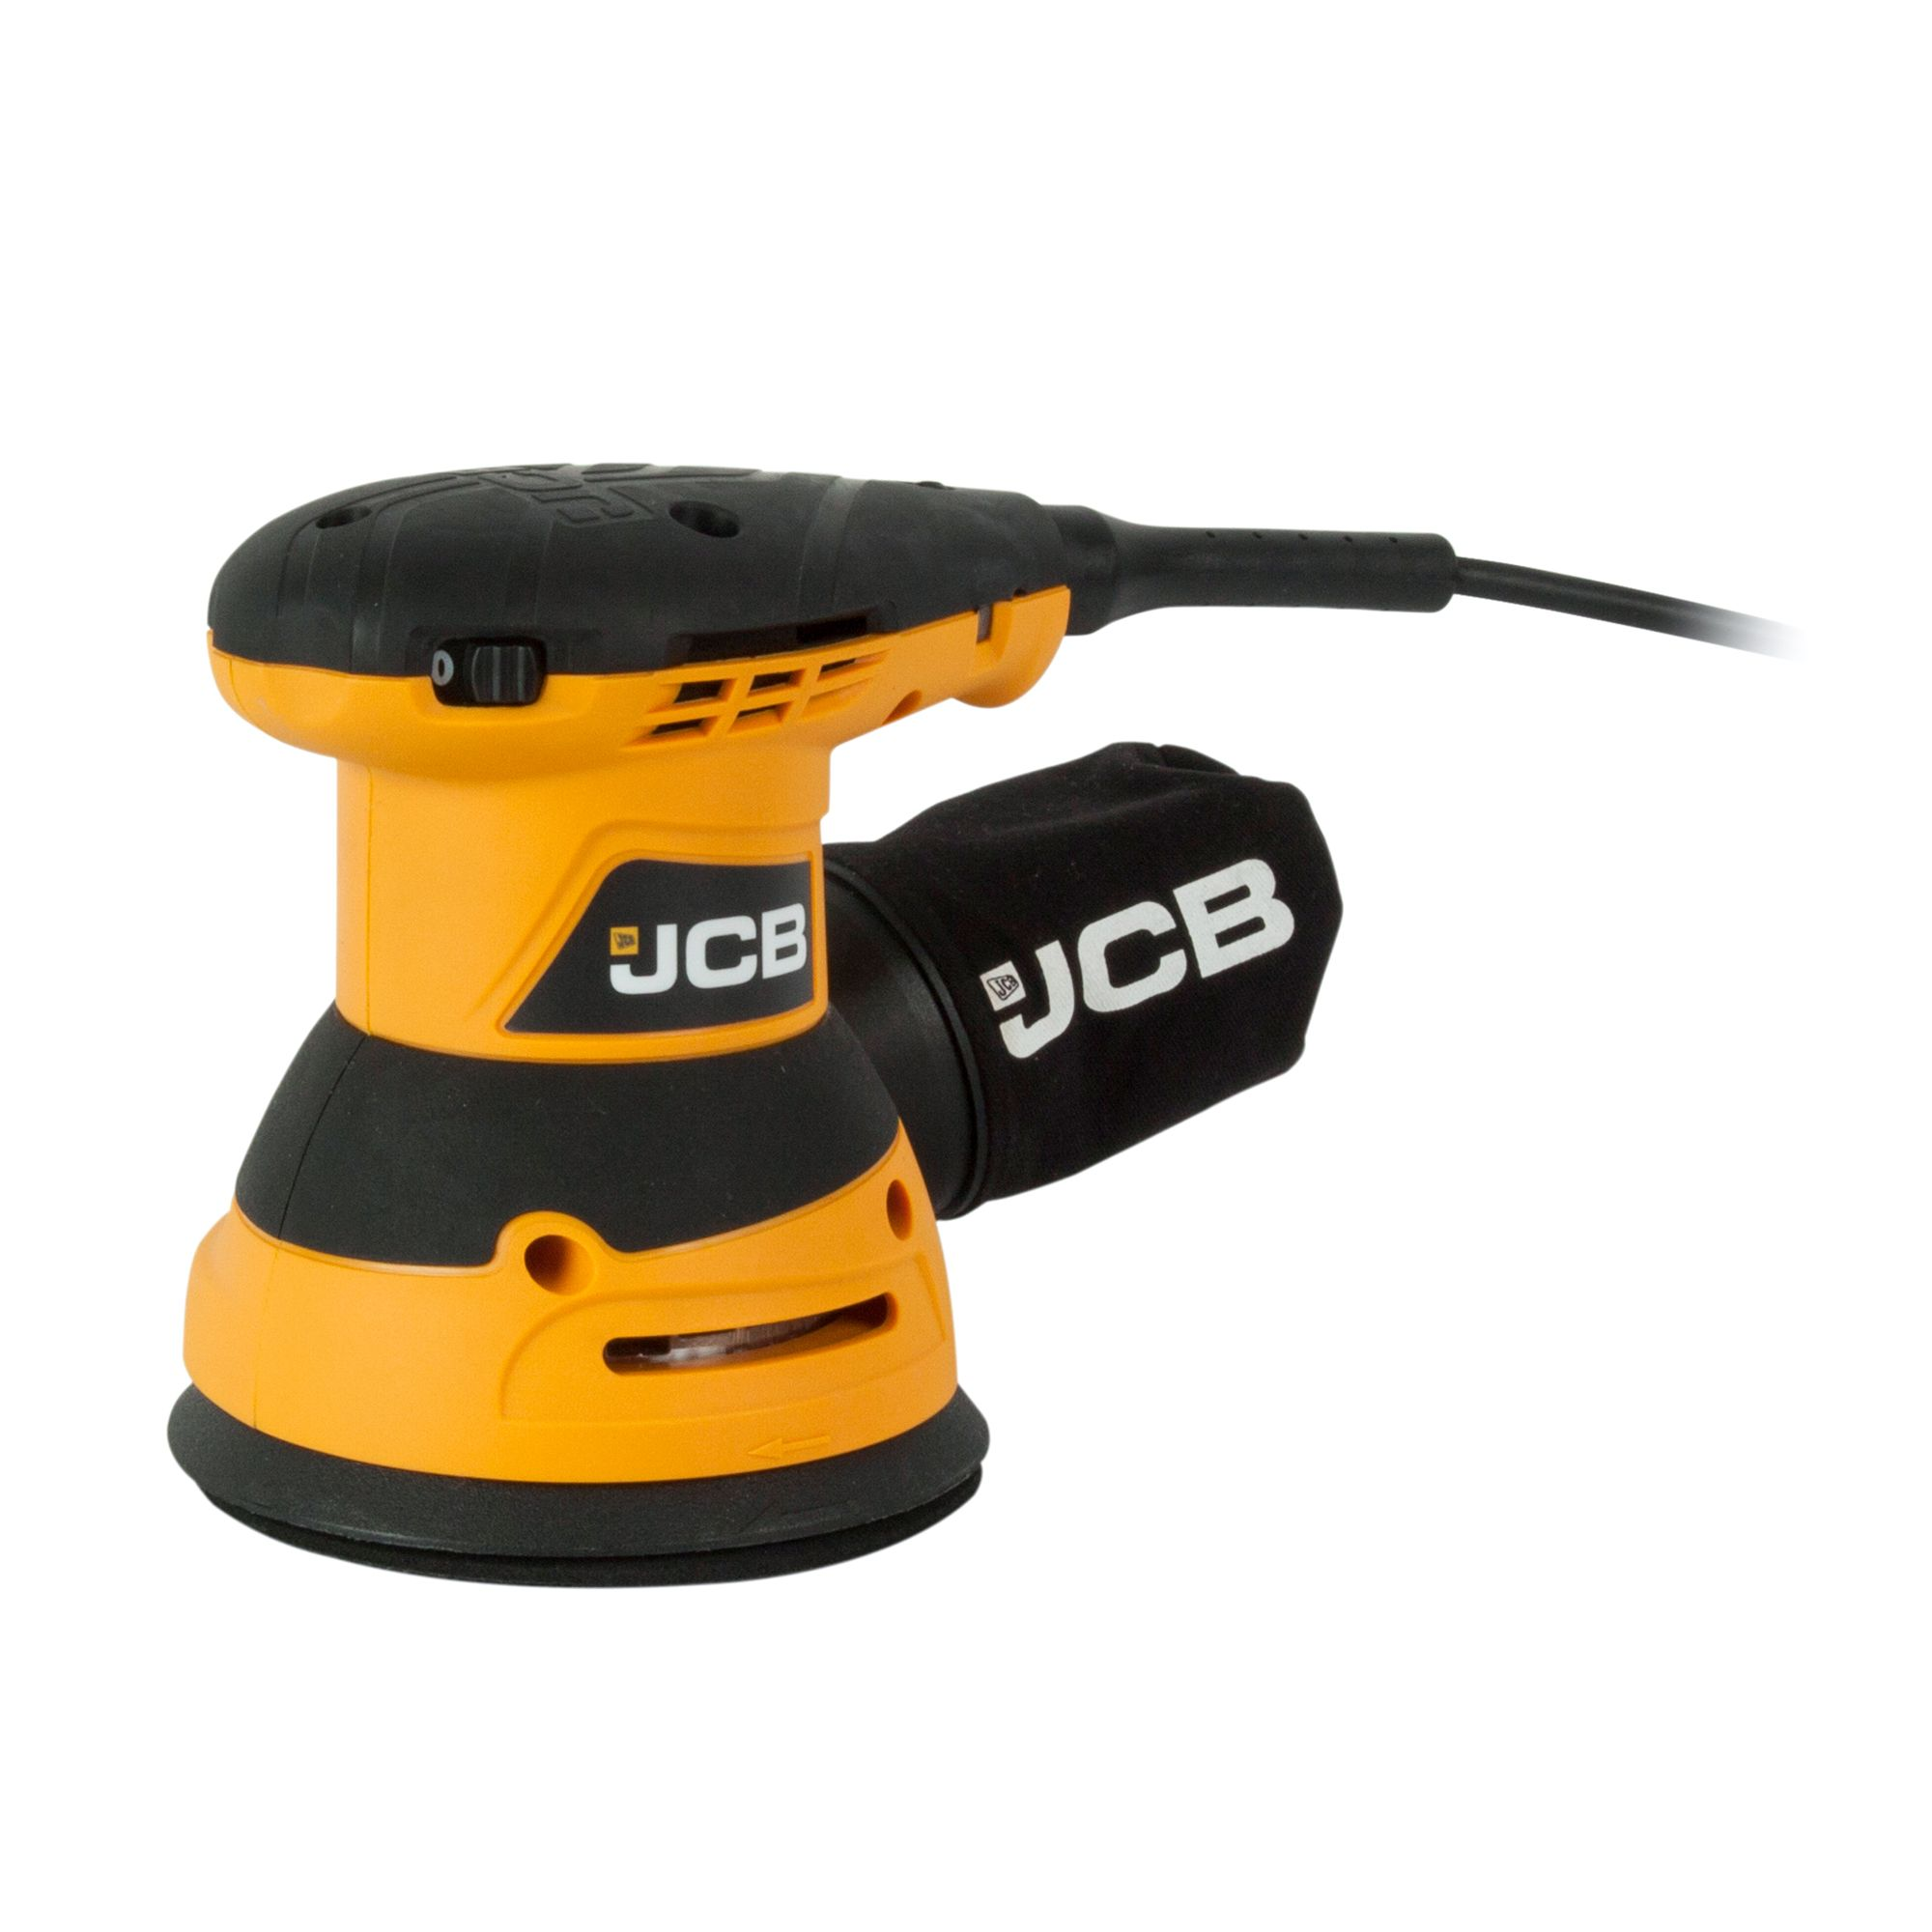 JCB Corded 320W 230-240V Orbital sander JCB-RO125 | Departments | DIY at B&Q